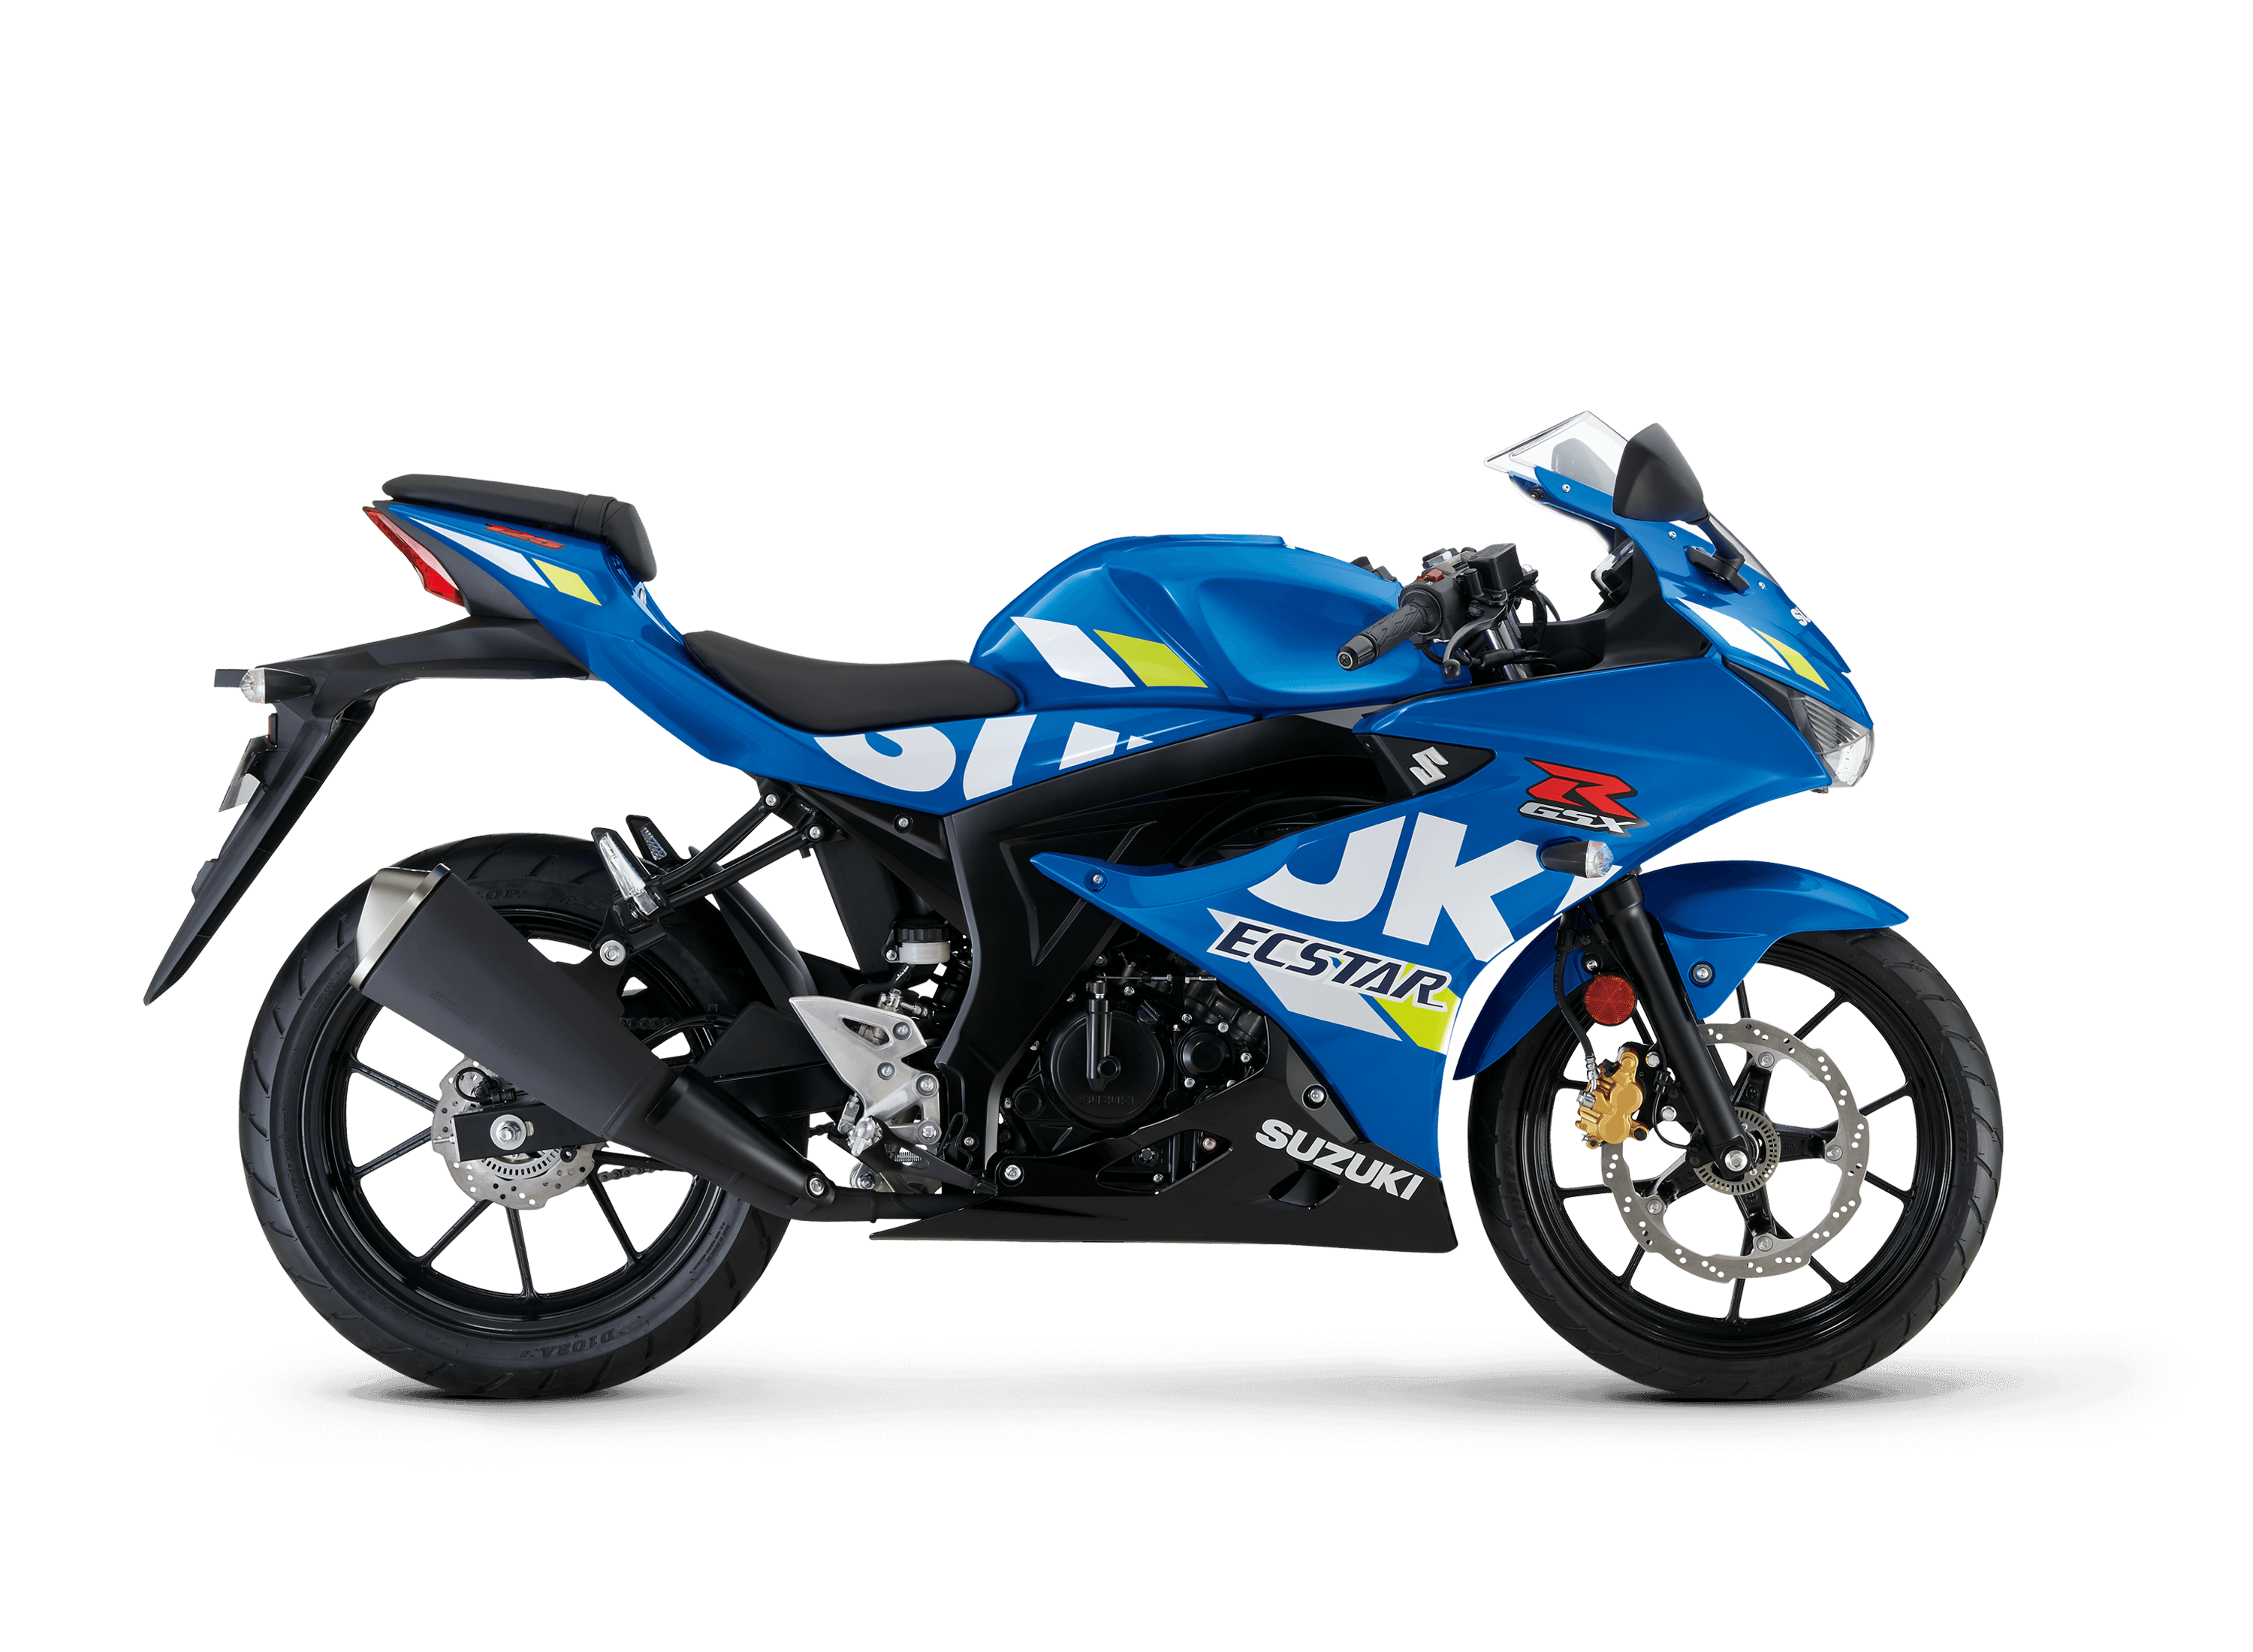 Stupendous Suzuki Gsx R125 Suzuki Bikes Uk Gmtry Best Dining Table And Chair Ideas Images Gmtryco